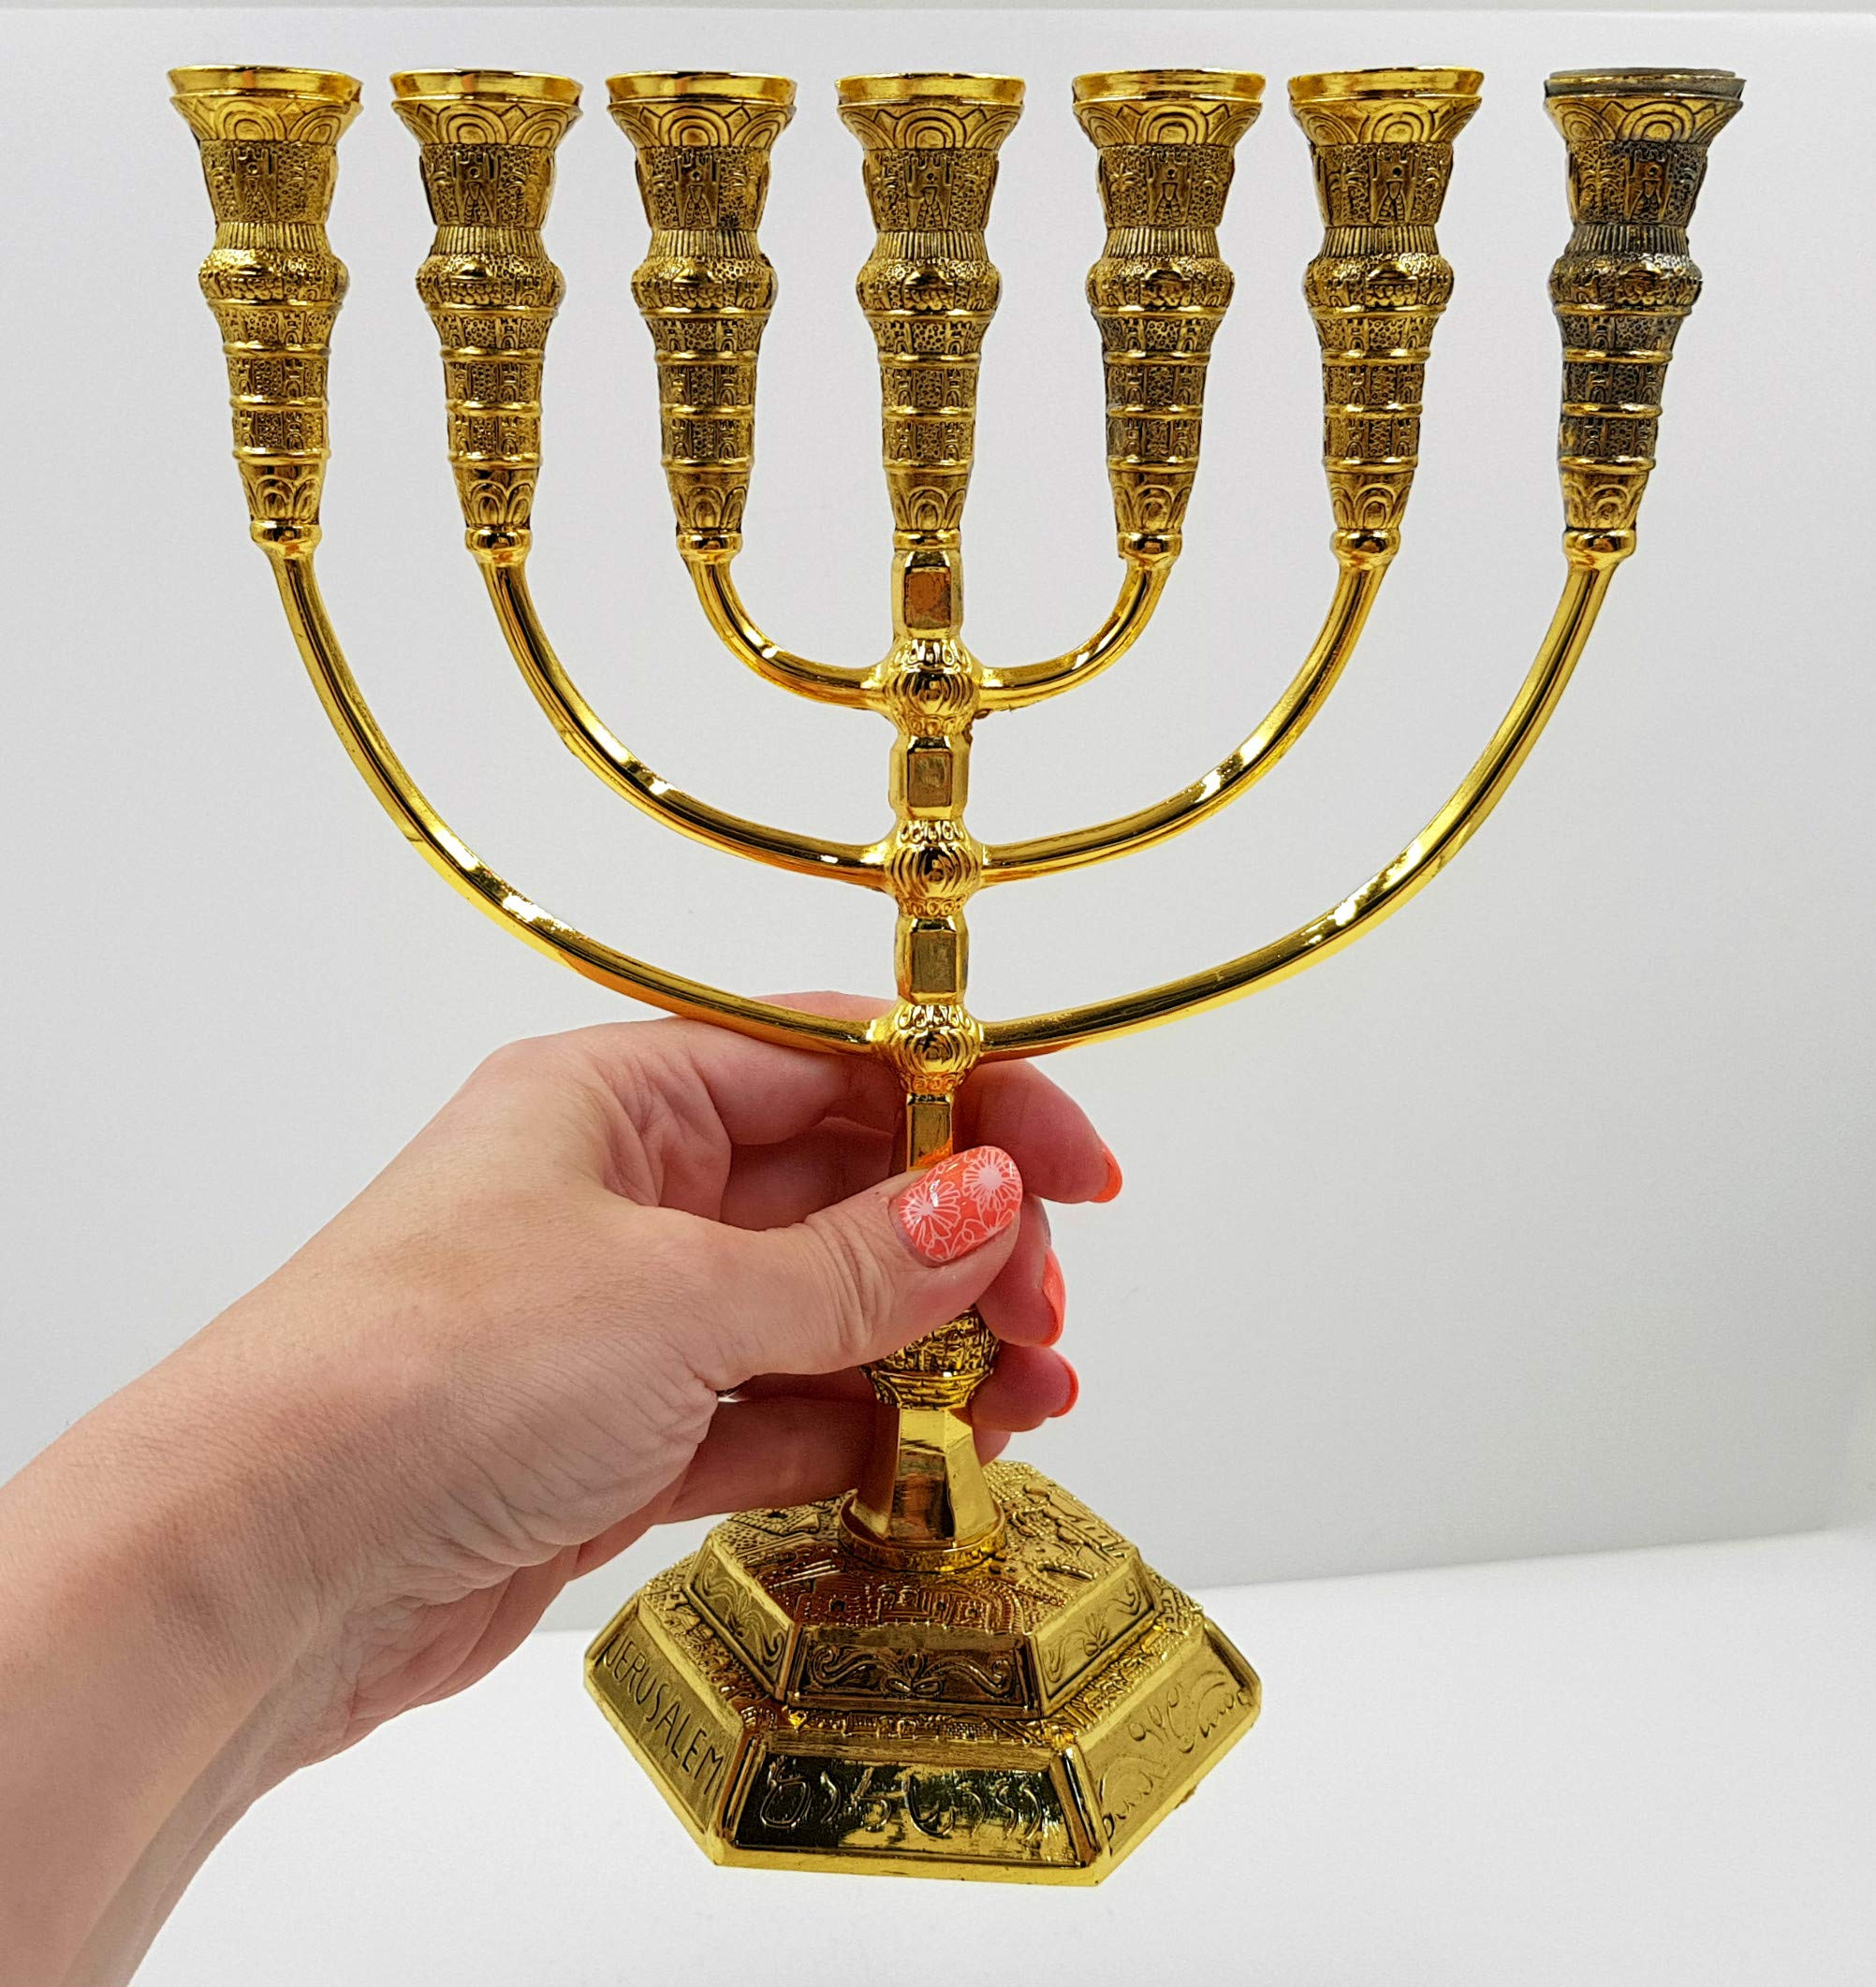 Talisman4U Jerusalem 7 Branch TEMPLE MENORAH 12 Tribes Of Israel Antique Gold Plated Candles Holder Height 9 Inch / 22 cm by Talisman4U (Image #3)